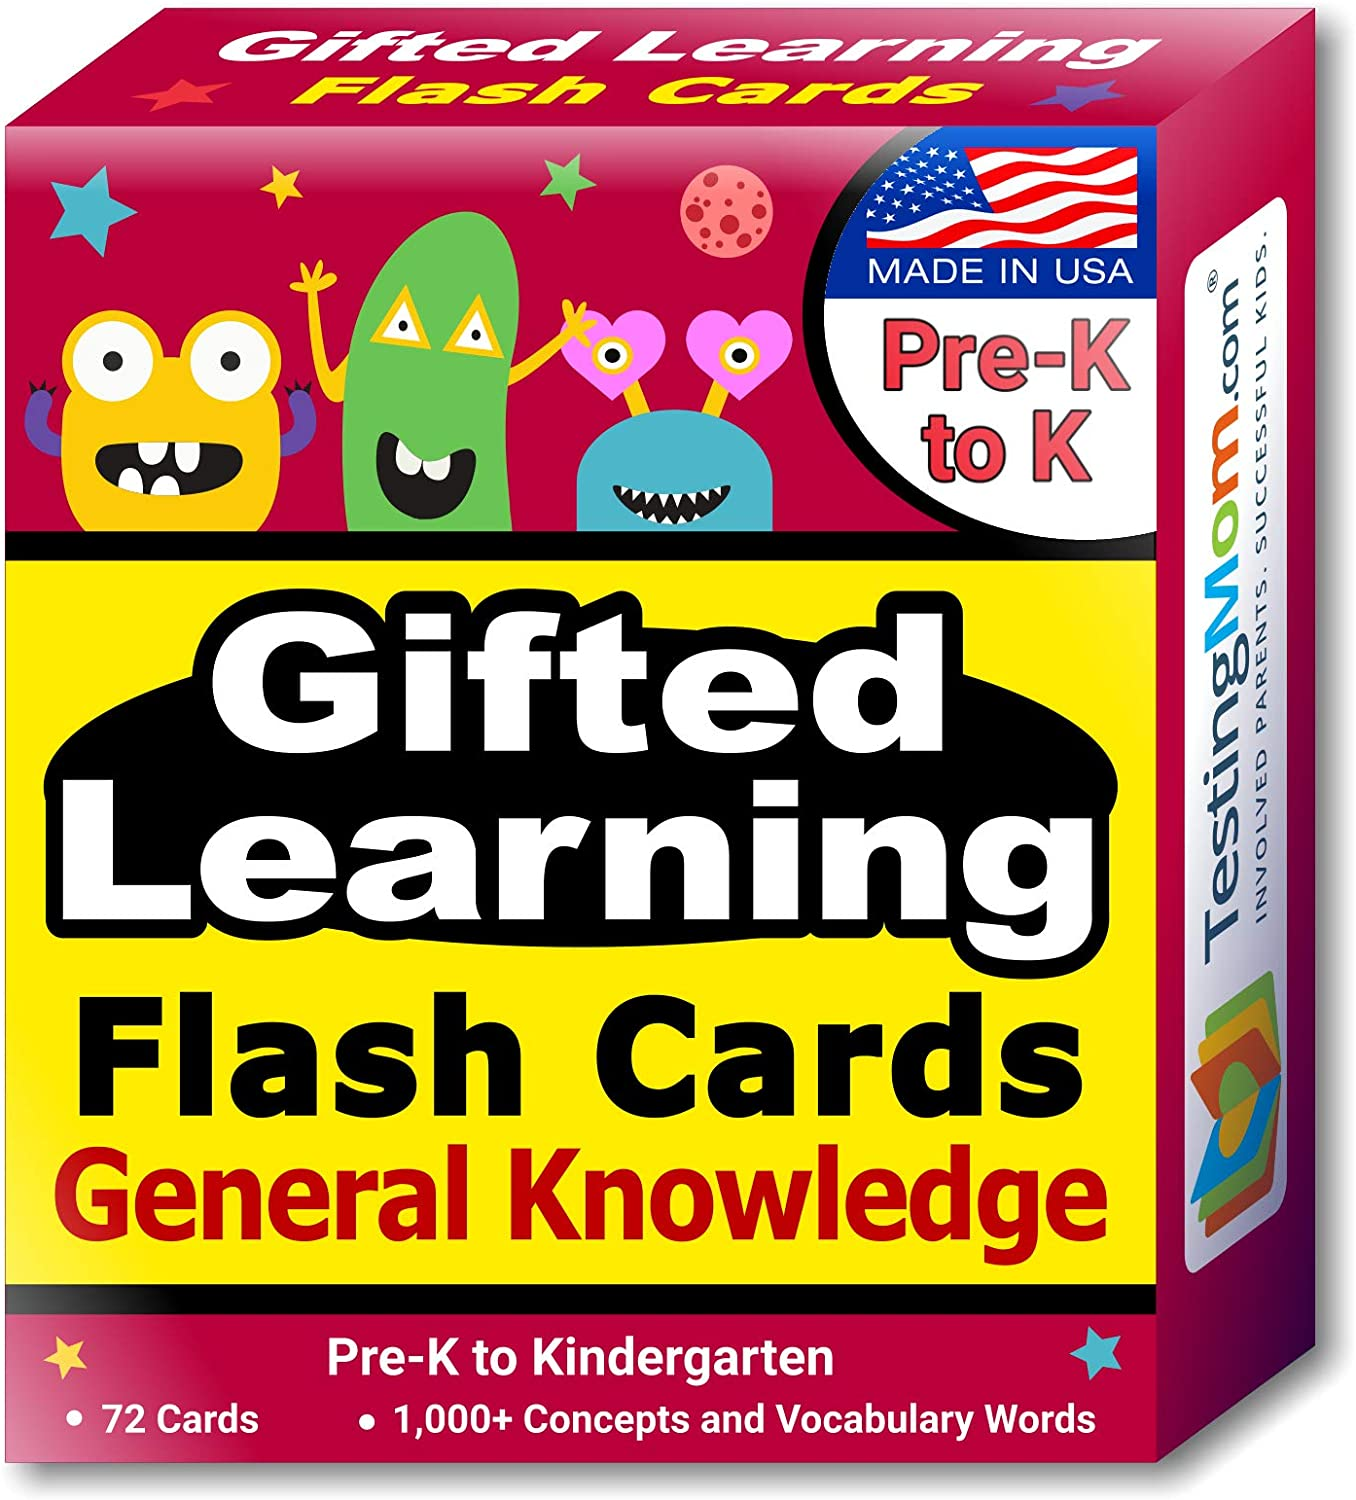 TestingMom.com Gifted Learning Flash Cards – General Knowledge for Pre-K – Kindergarten – G&T Educational Practice: CogAT Test, Iowa Test, OLSAT, NYC Gifted and Talented, WPPSI, AABL